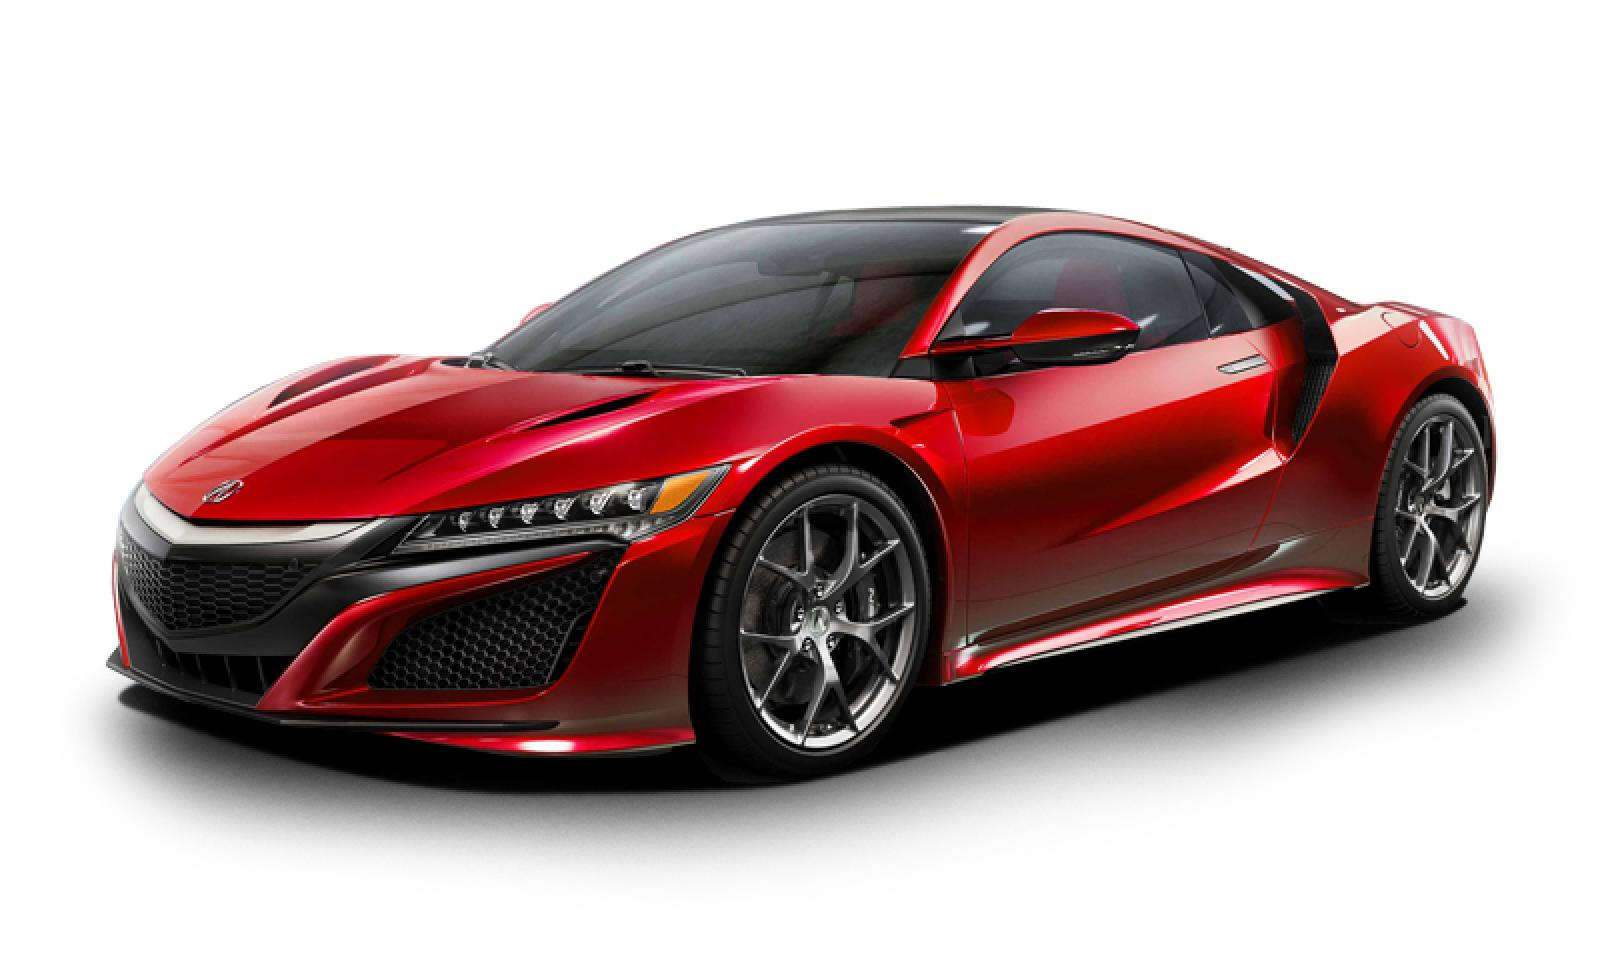 2015 Acura Nsx Information And Photos Zomb Drive